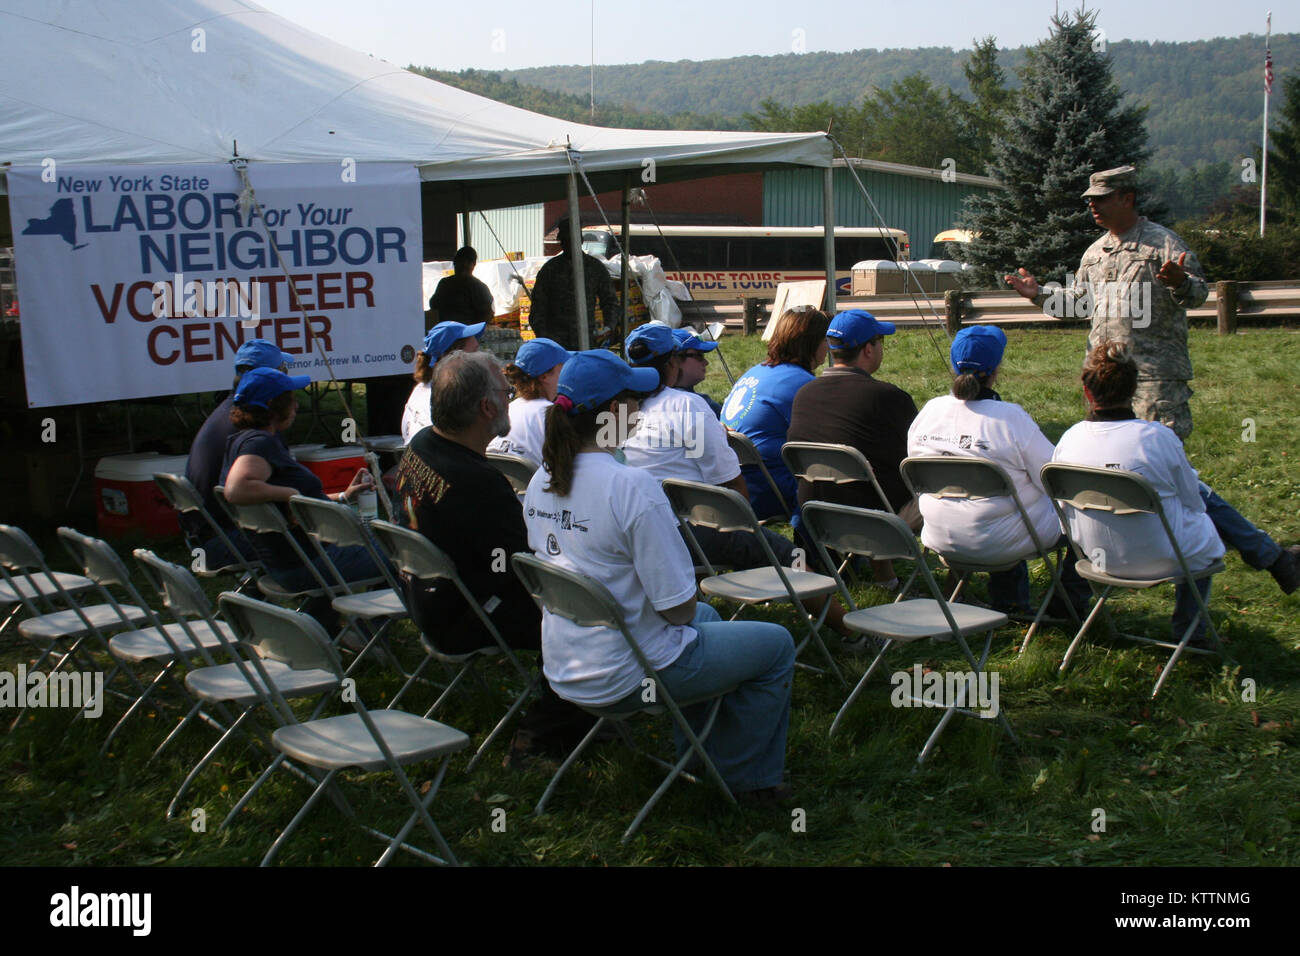 New York Army National Guard Sgt. 1st Class Frank Rizzi briefs volunteers before missions in Prattsville, N.Y. Sep. Stock Photo